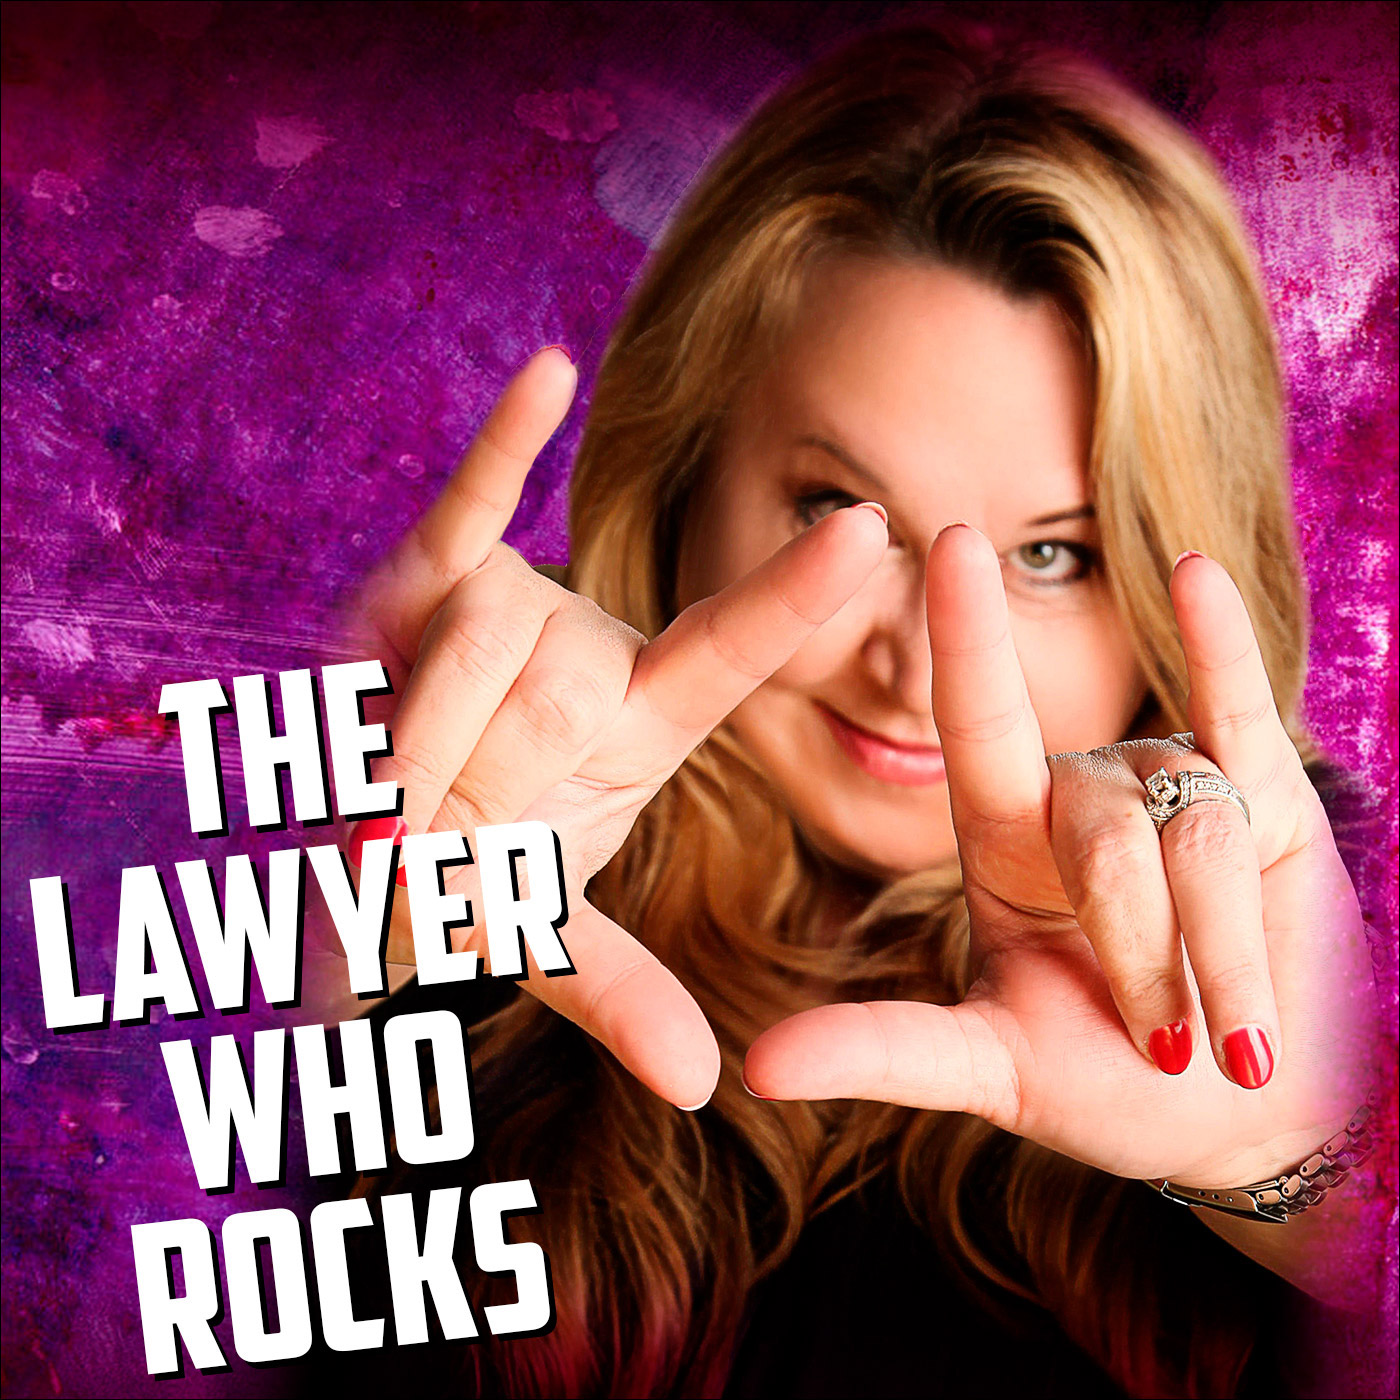 Lawyer_Who_Rocks_v8.jpg